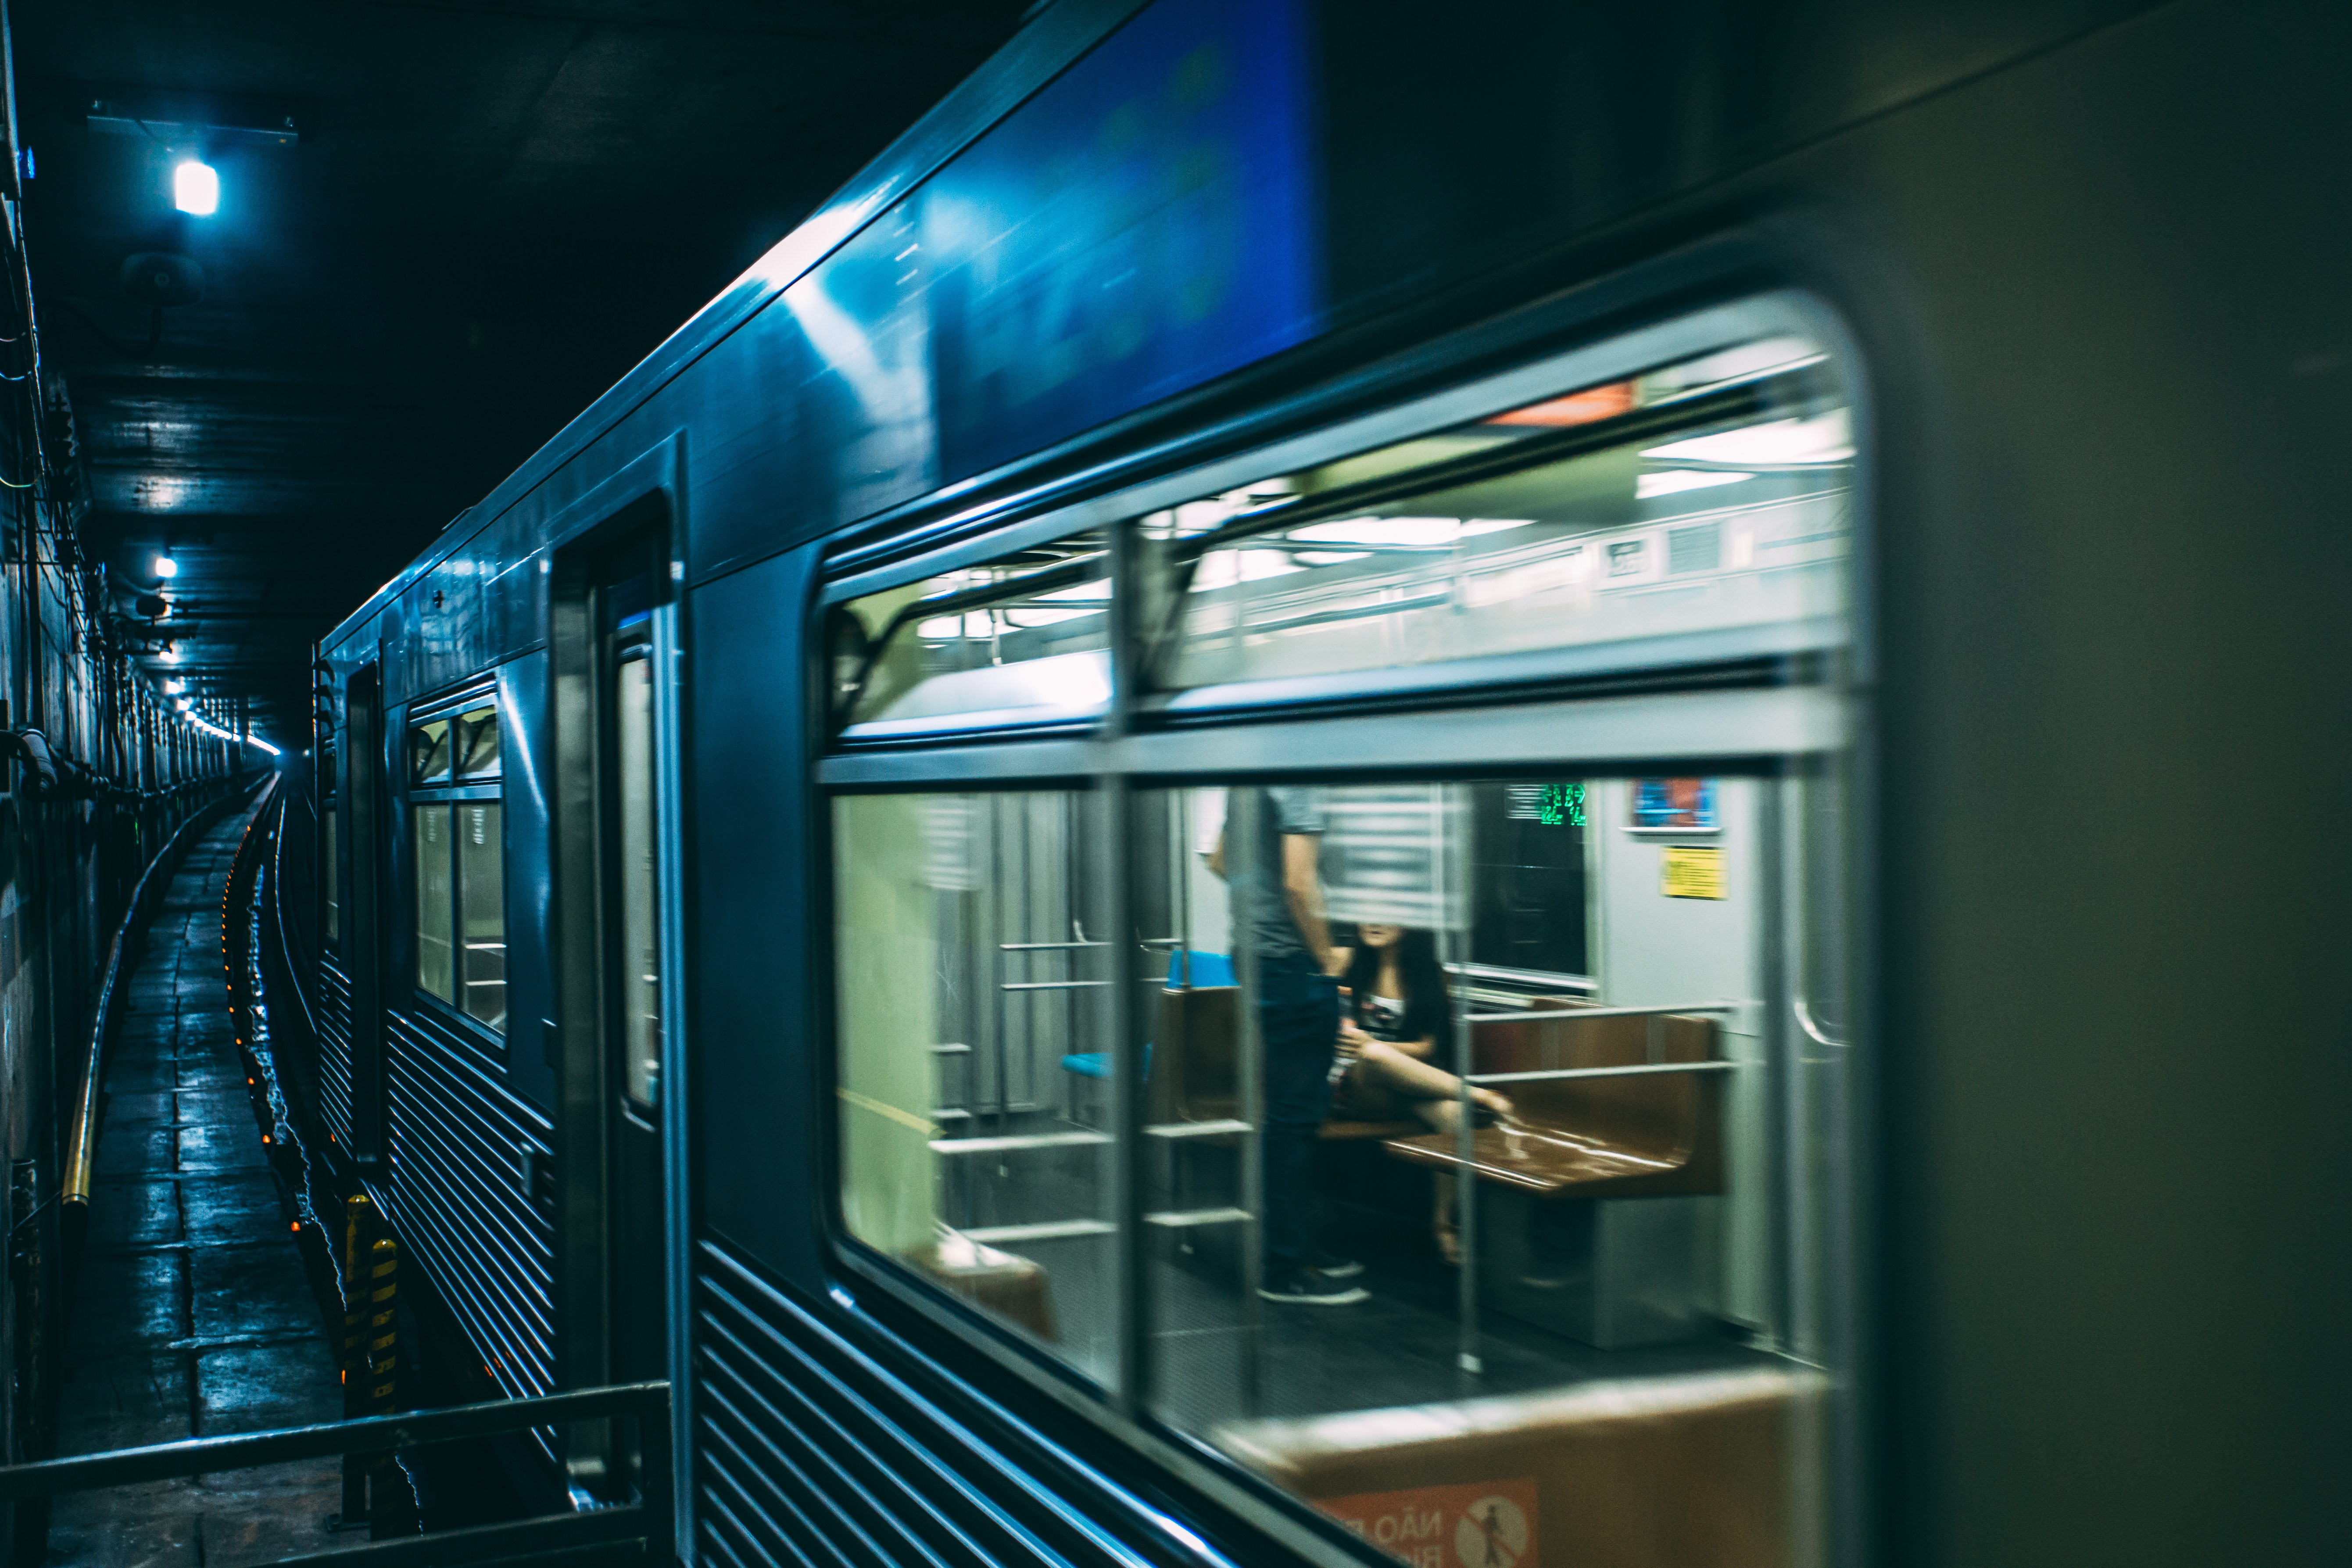 Train on Tunnel, Commute, Subway, Underground, Traveler, HQ Photo